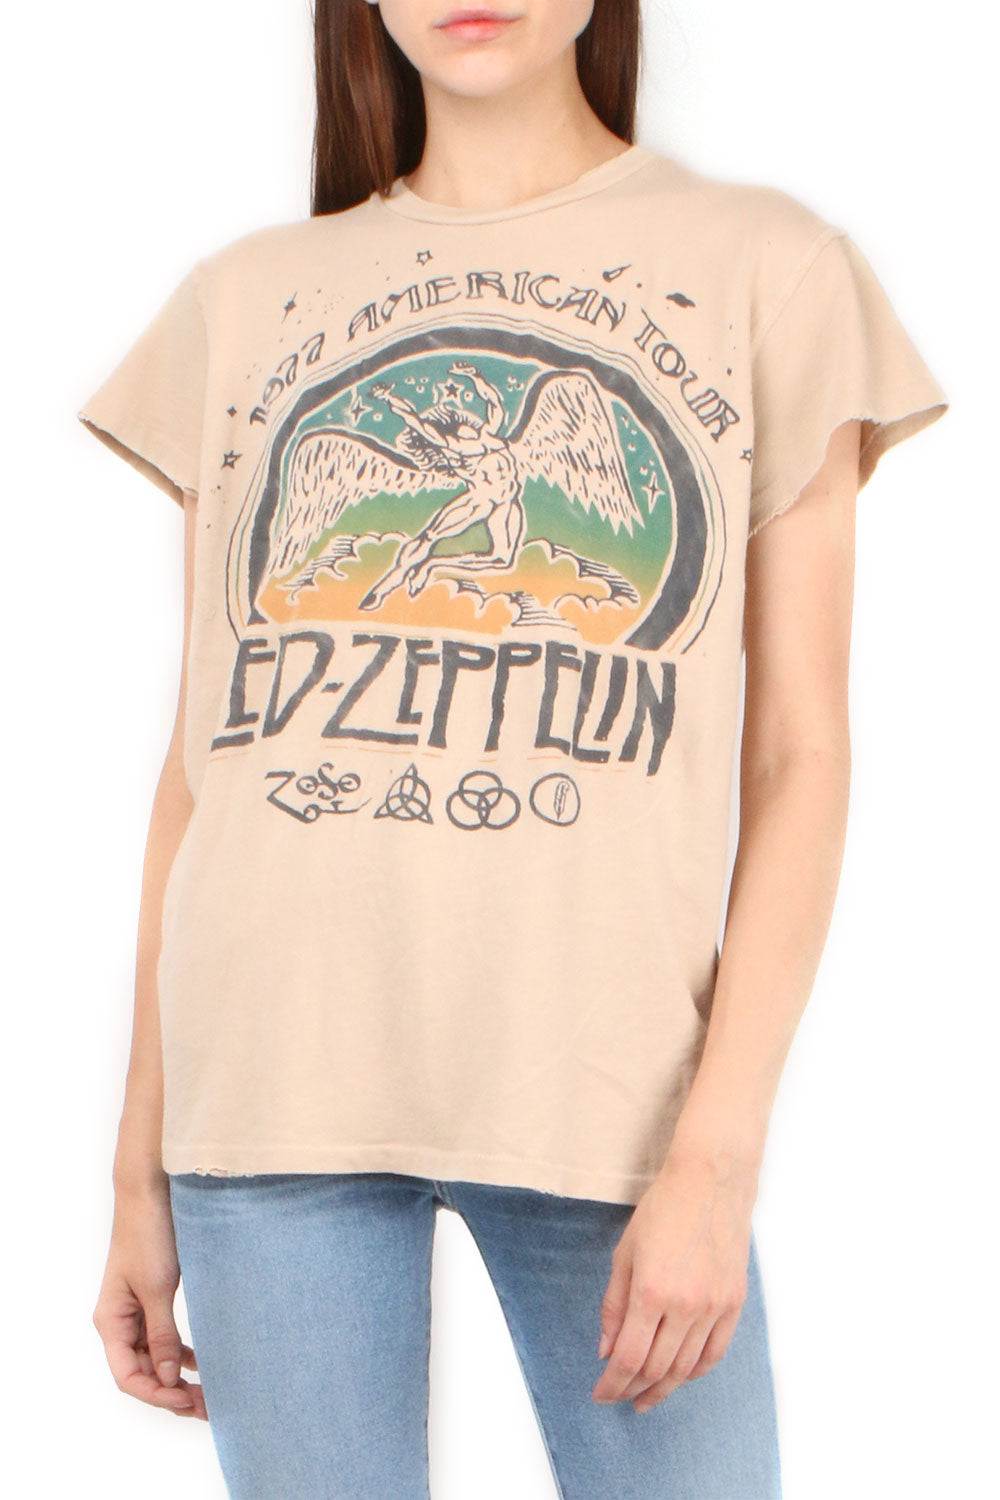 Led Zeppelin 1977 Tee